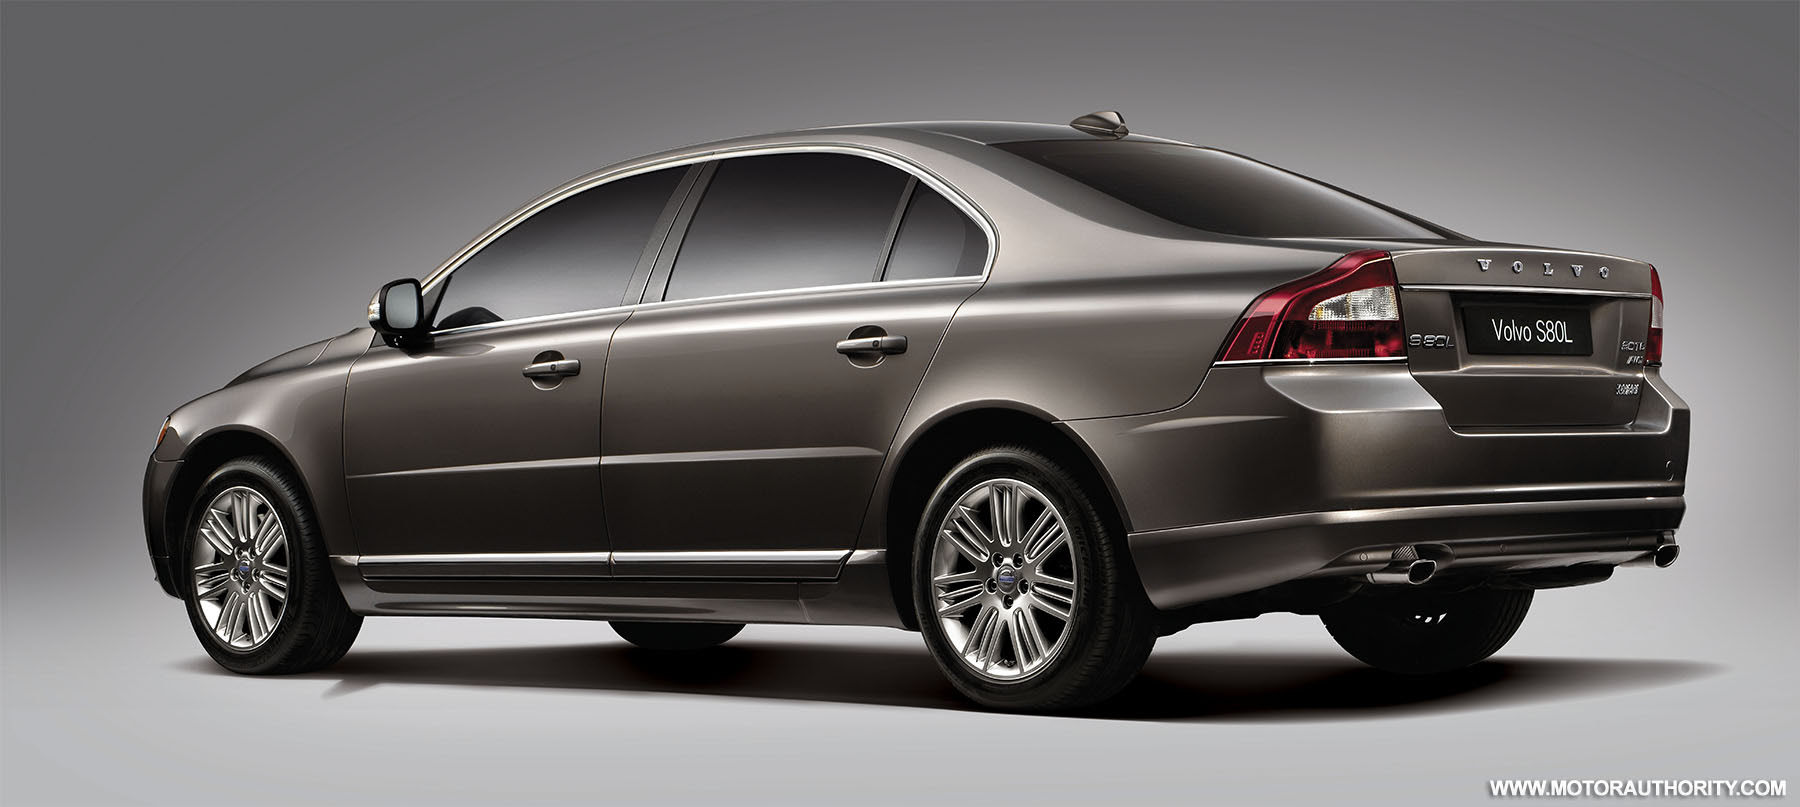 First Volvo S80L long-wheelbase sedans roll off the line in China